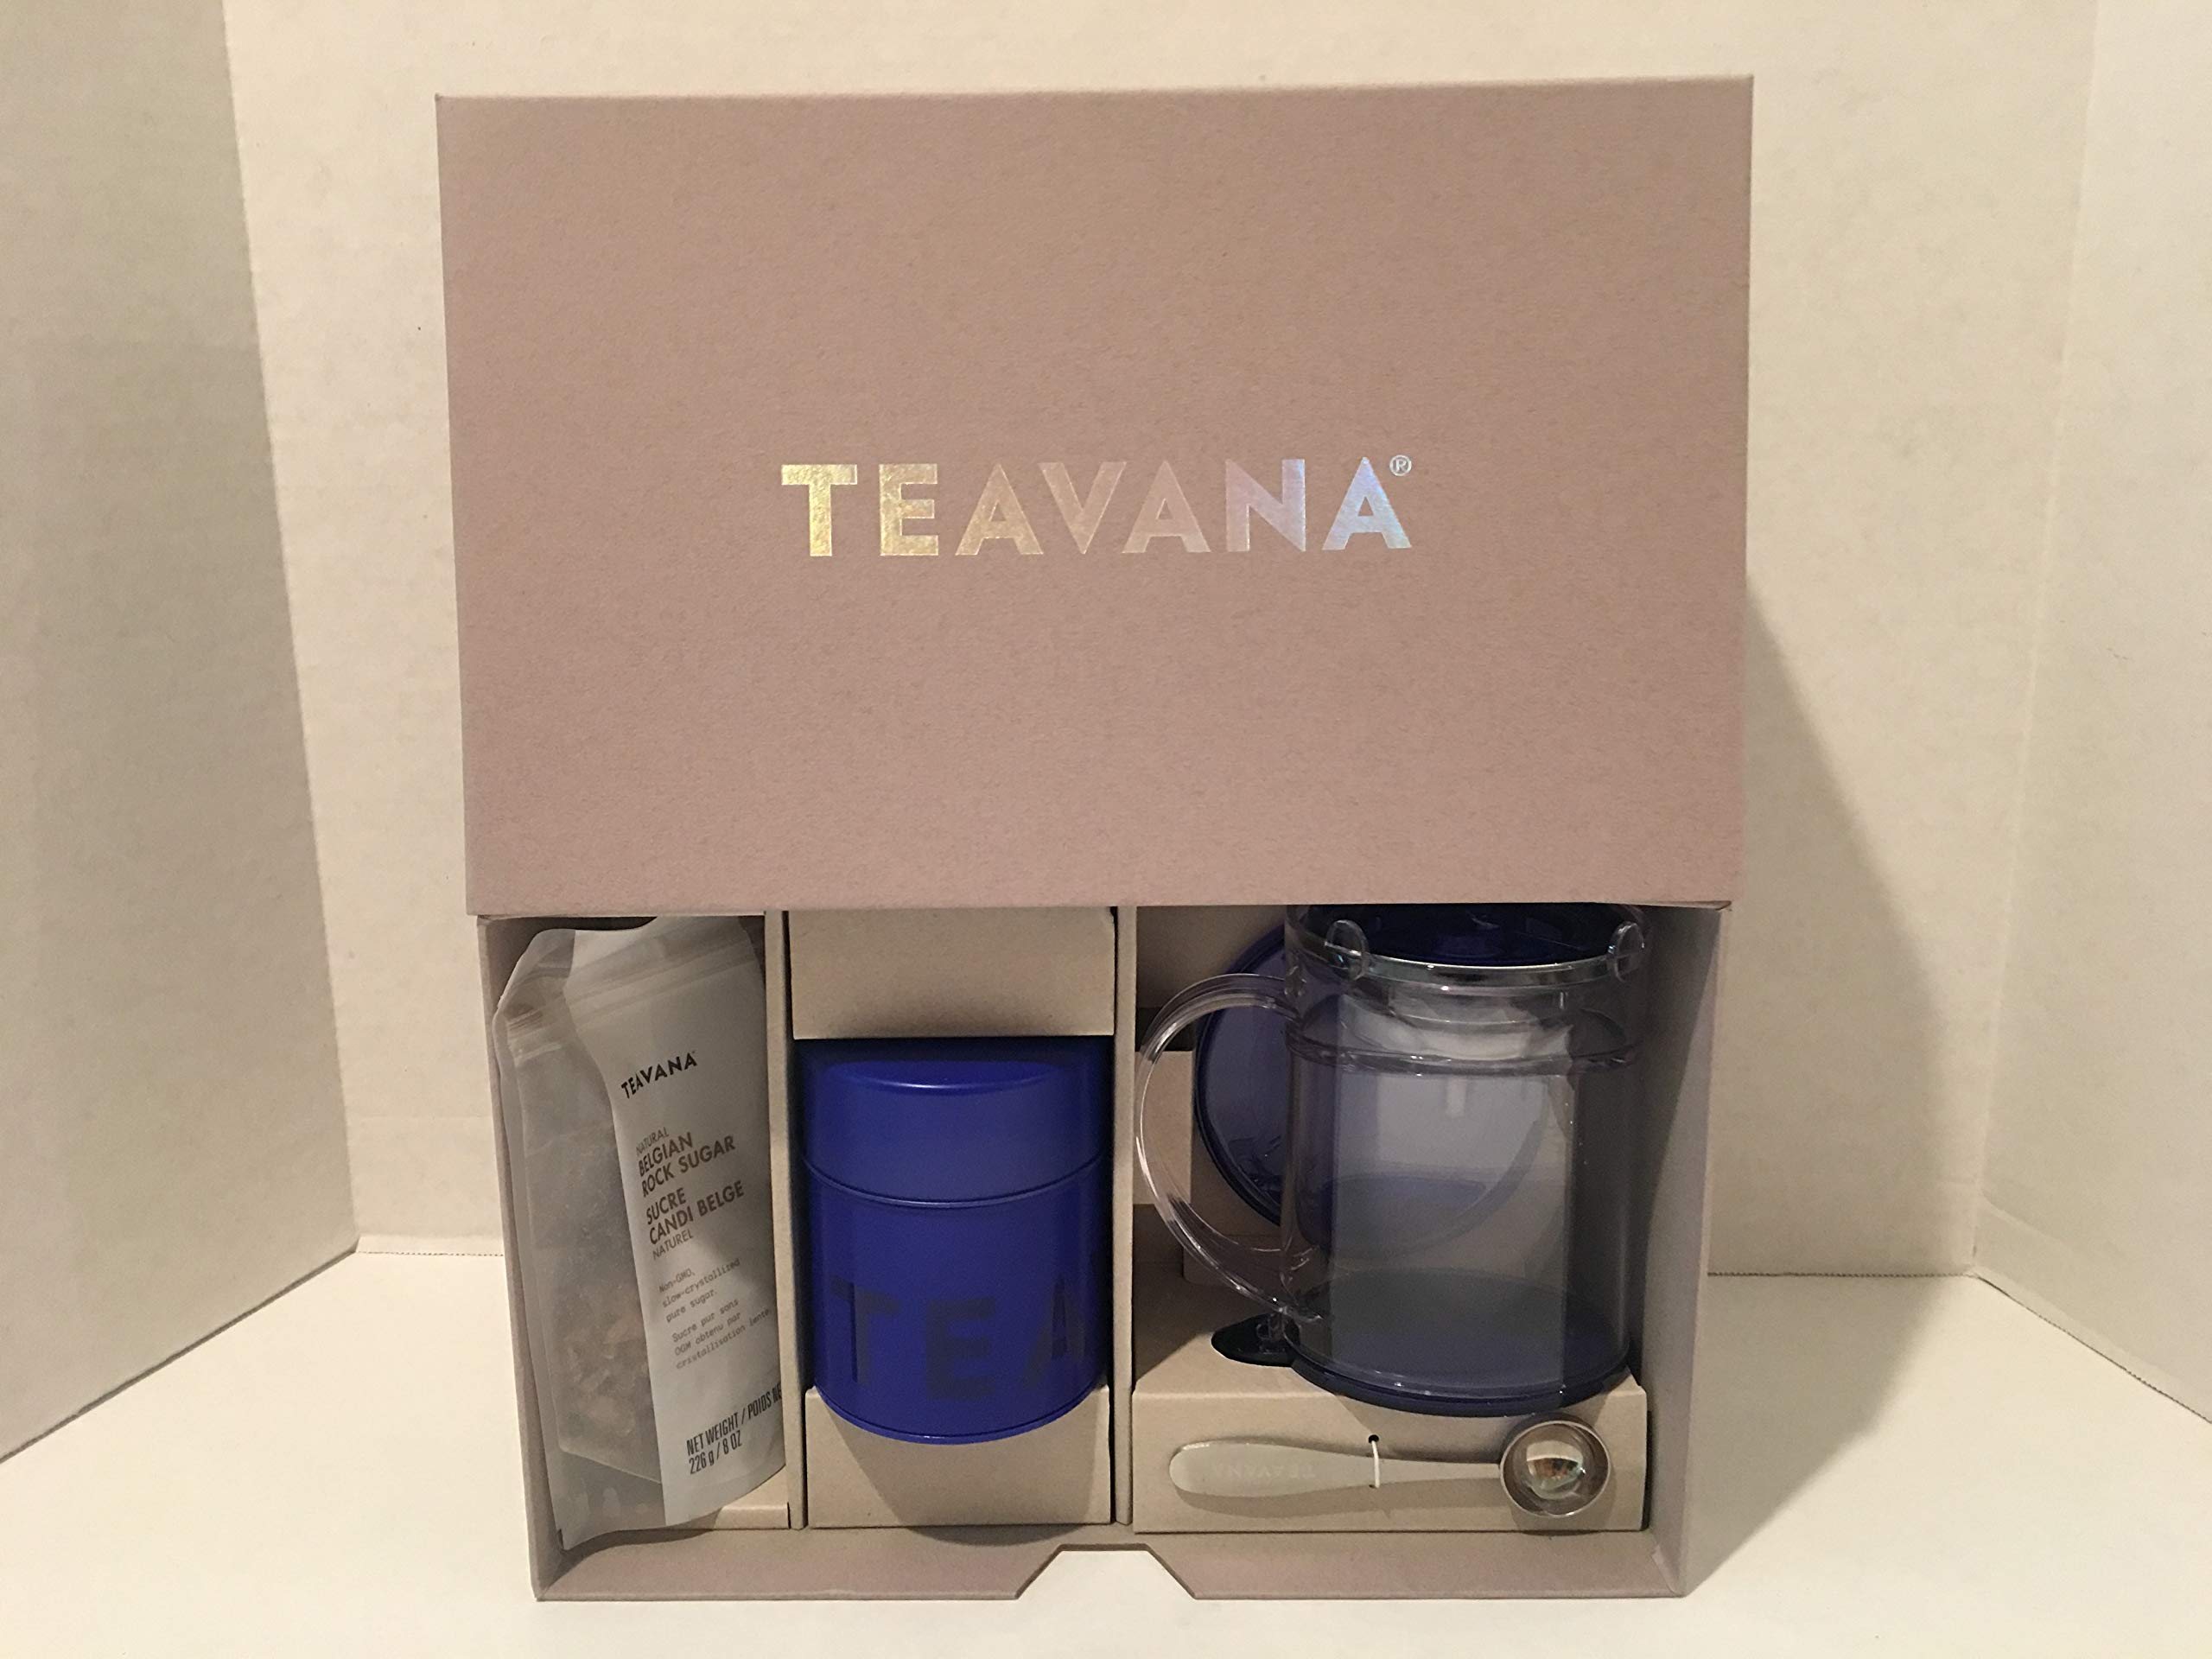 Teavana Start Steeping Starter Brewing Kit (Blue Perfectea Maker, Tea Tin, Scoop and Belgian Rock Sugar) by Teavana